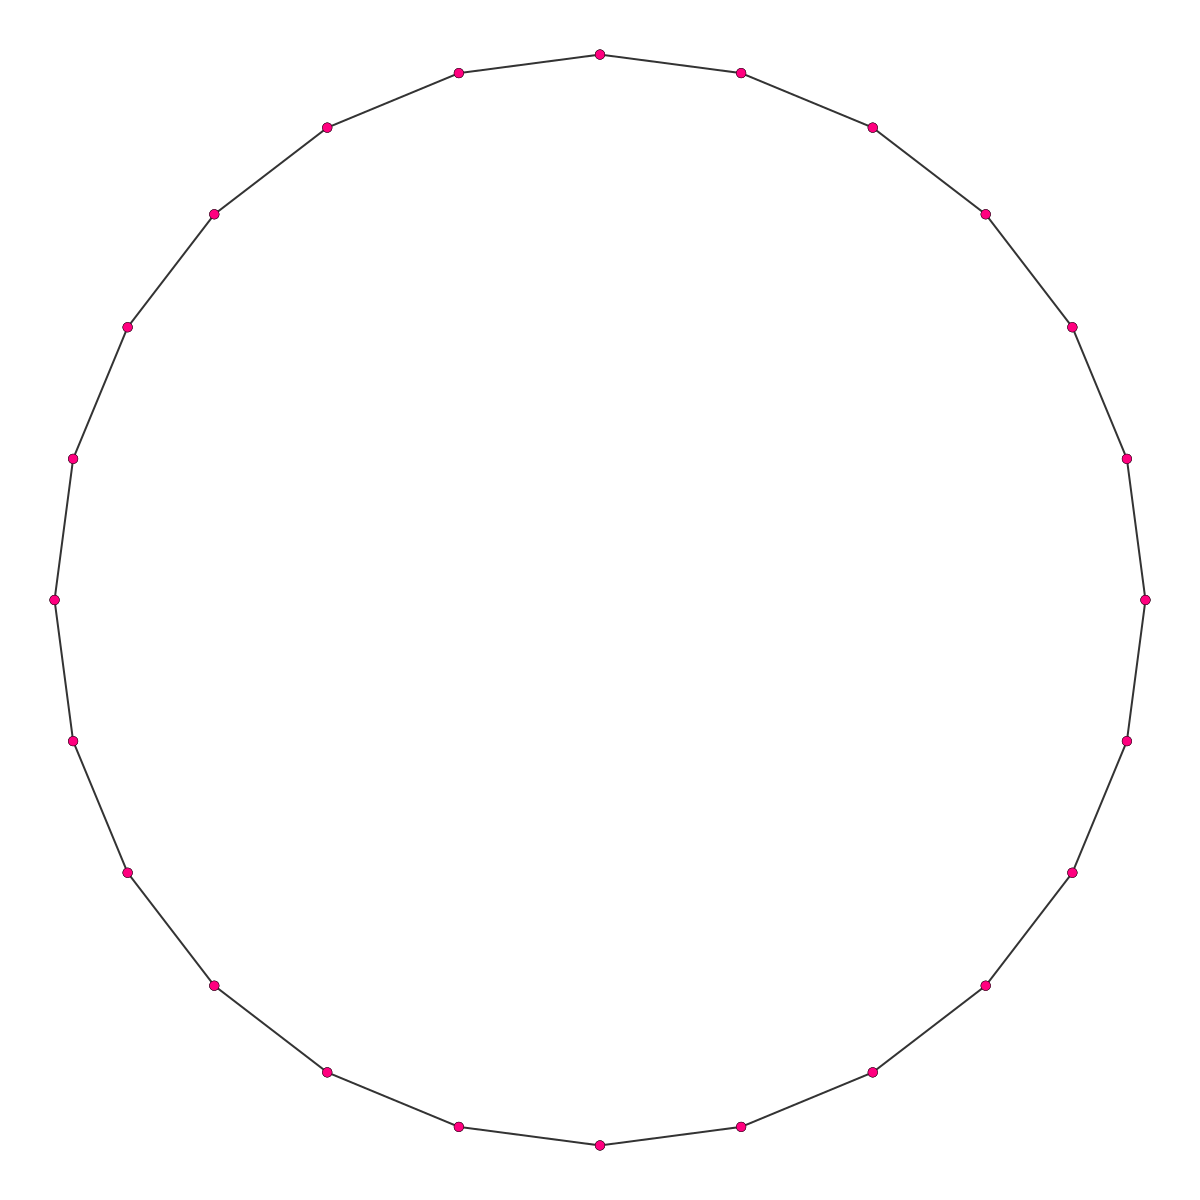 fraction clipart polygon